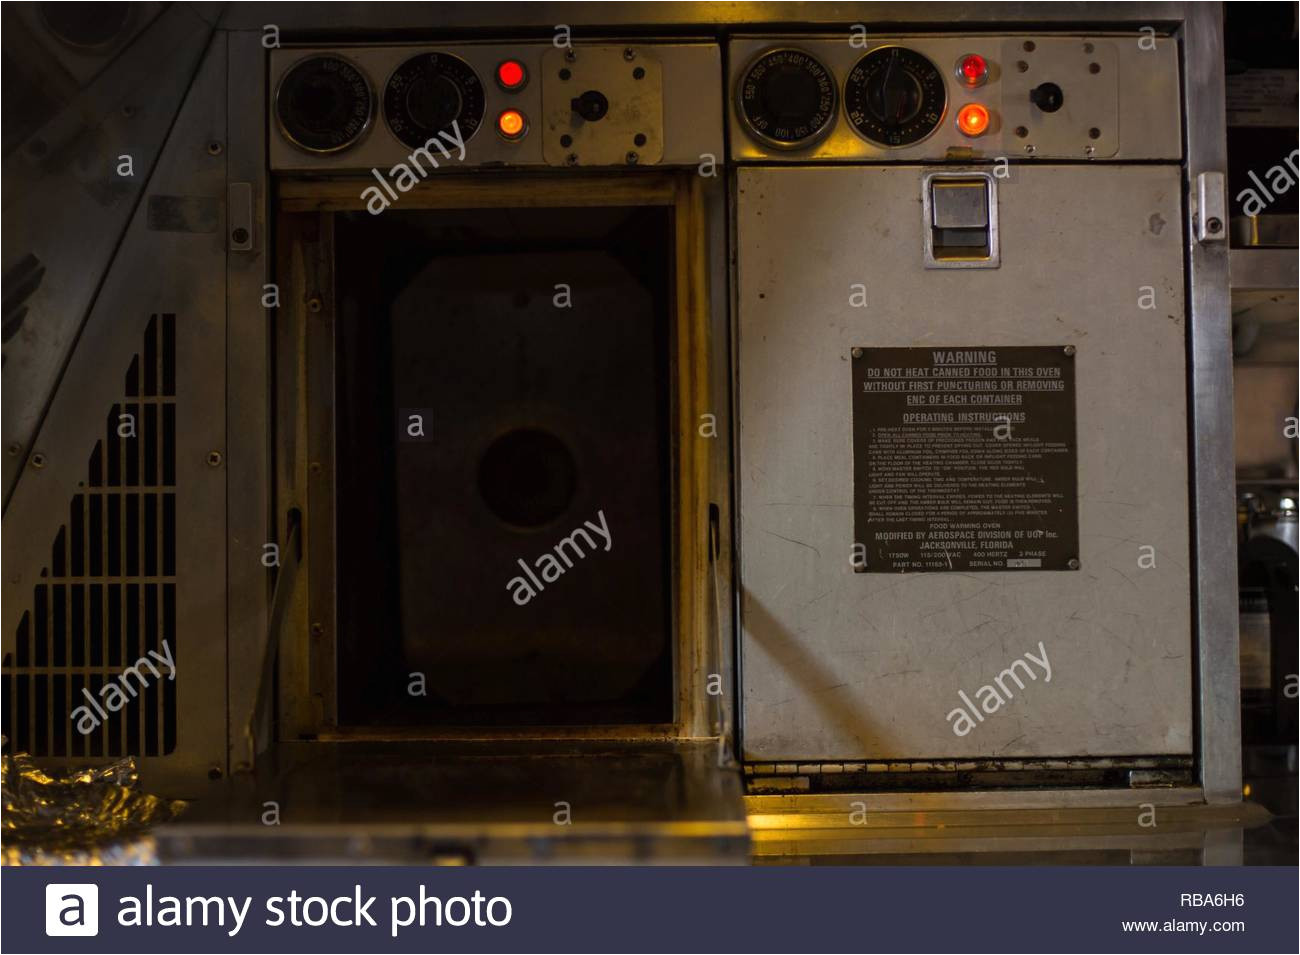 a kc 10 extender oven is heated for a holiday meal during a sortie supporting